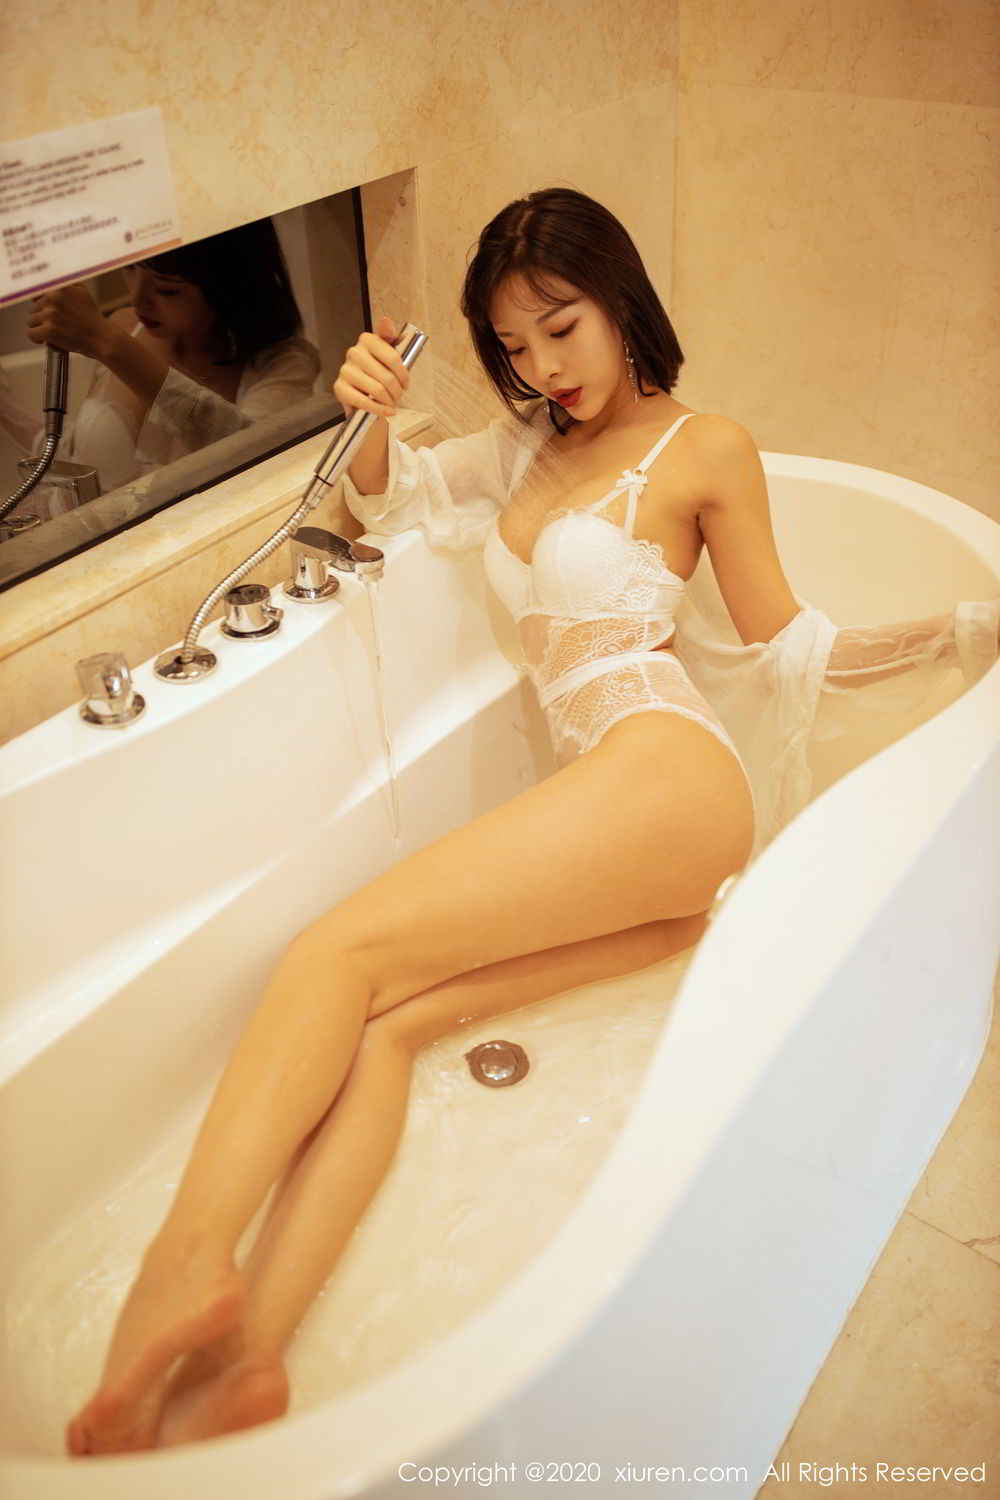 [XiuRen] Vol.2158 Chen Xiao Miao 20P, Bathroom, Chen Xiao Miao, Tall, Wet, Xiuren